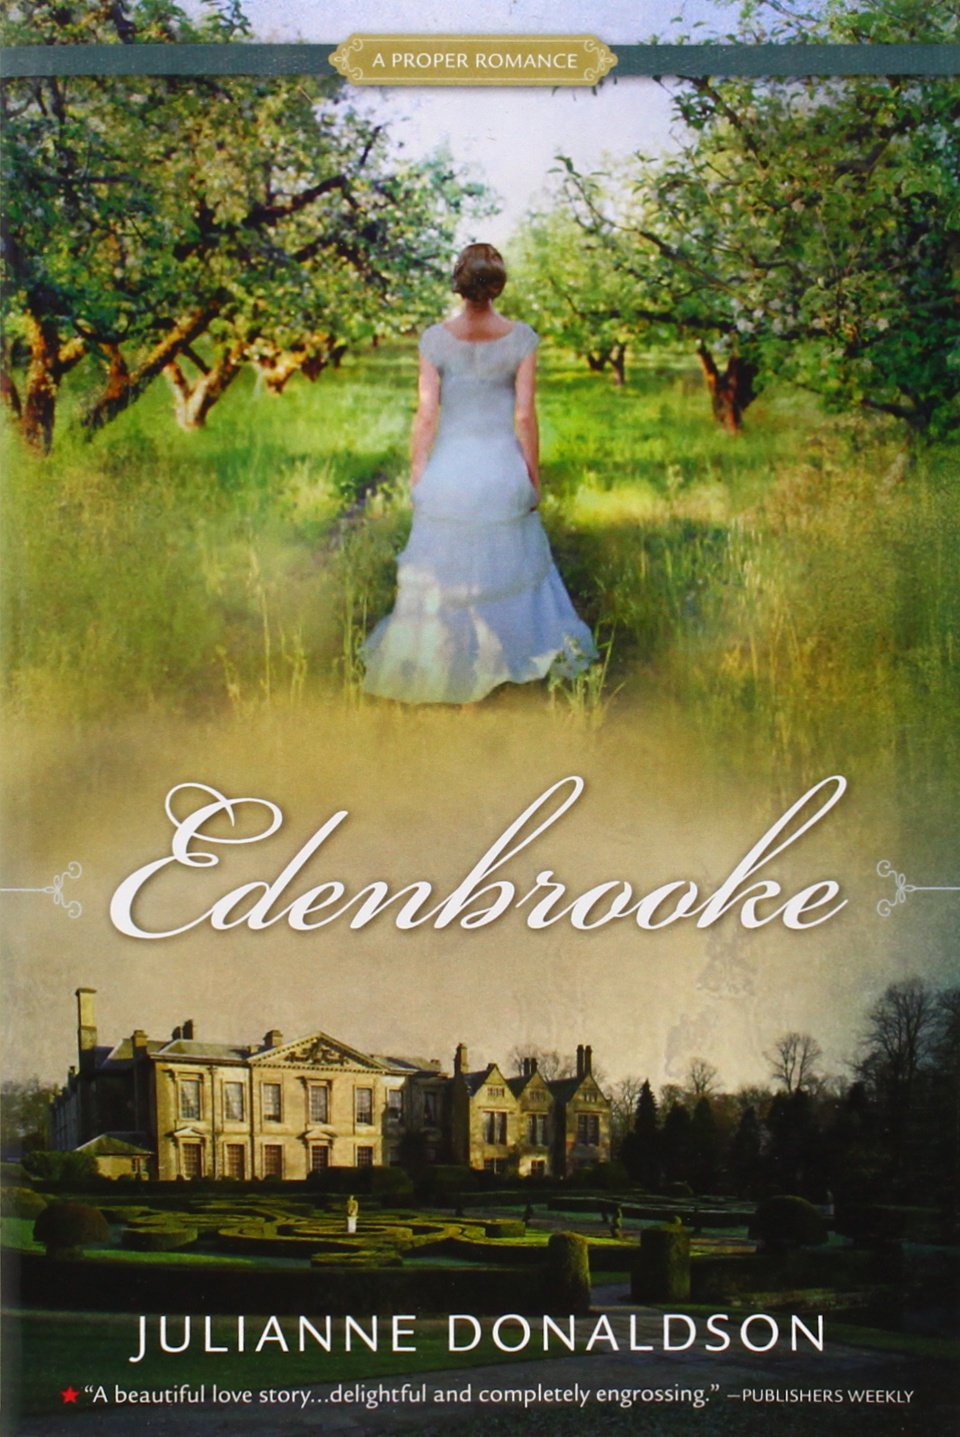 By Julianne Donaldson - When an invitation arrives from her twin sister, Cecily, to join her at a sprawling country estate, Marianne jumps at the chance.*